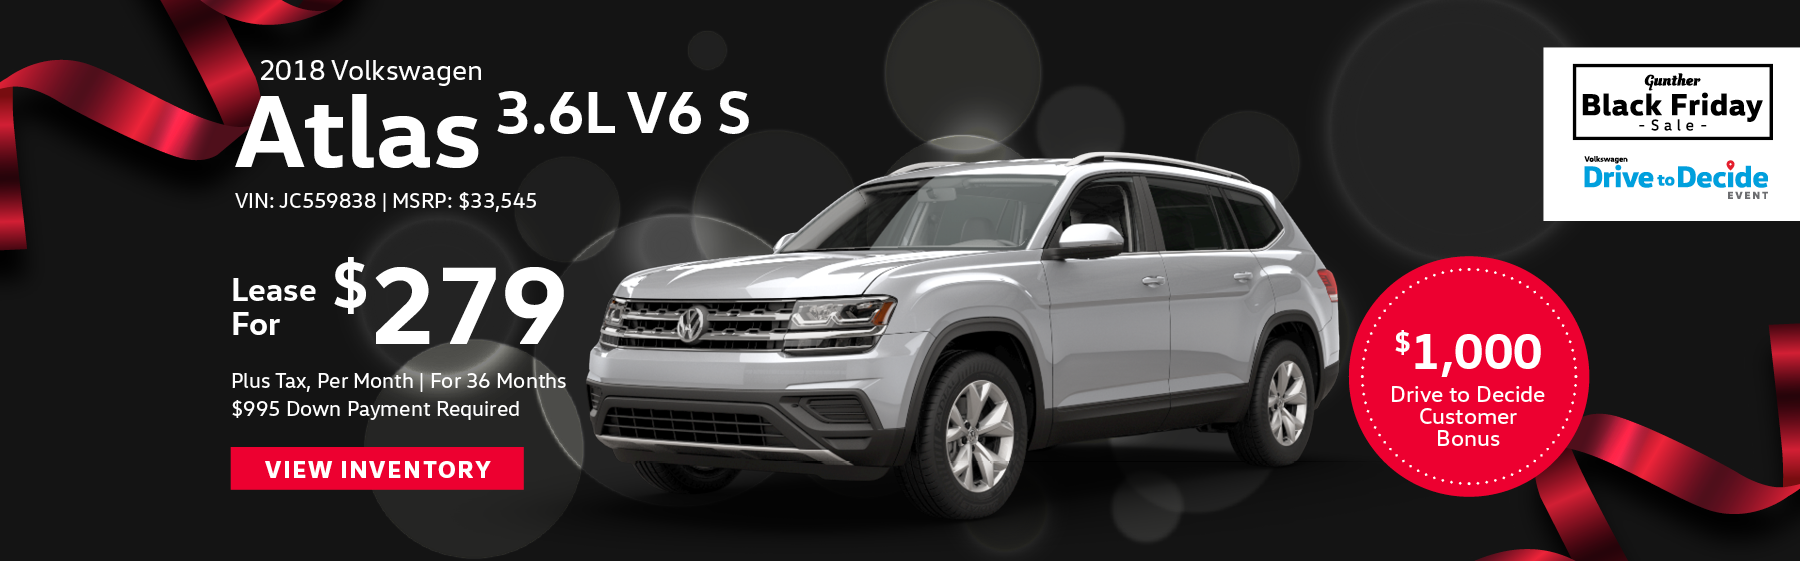 Lease the 2018 Volkswagen Atlas 3.6L V6 S for $279 plus tax for 36 months. $995 Down payment required.